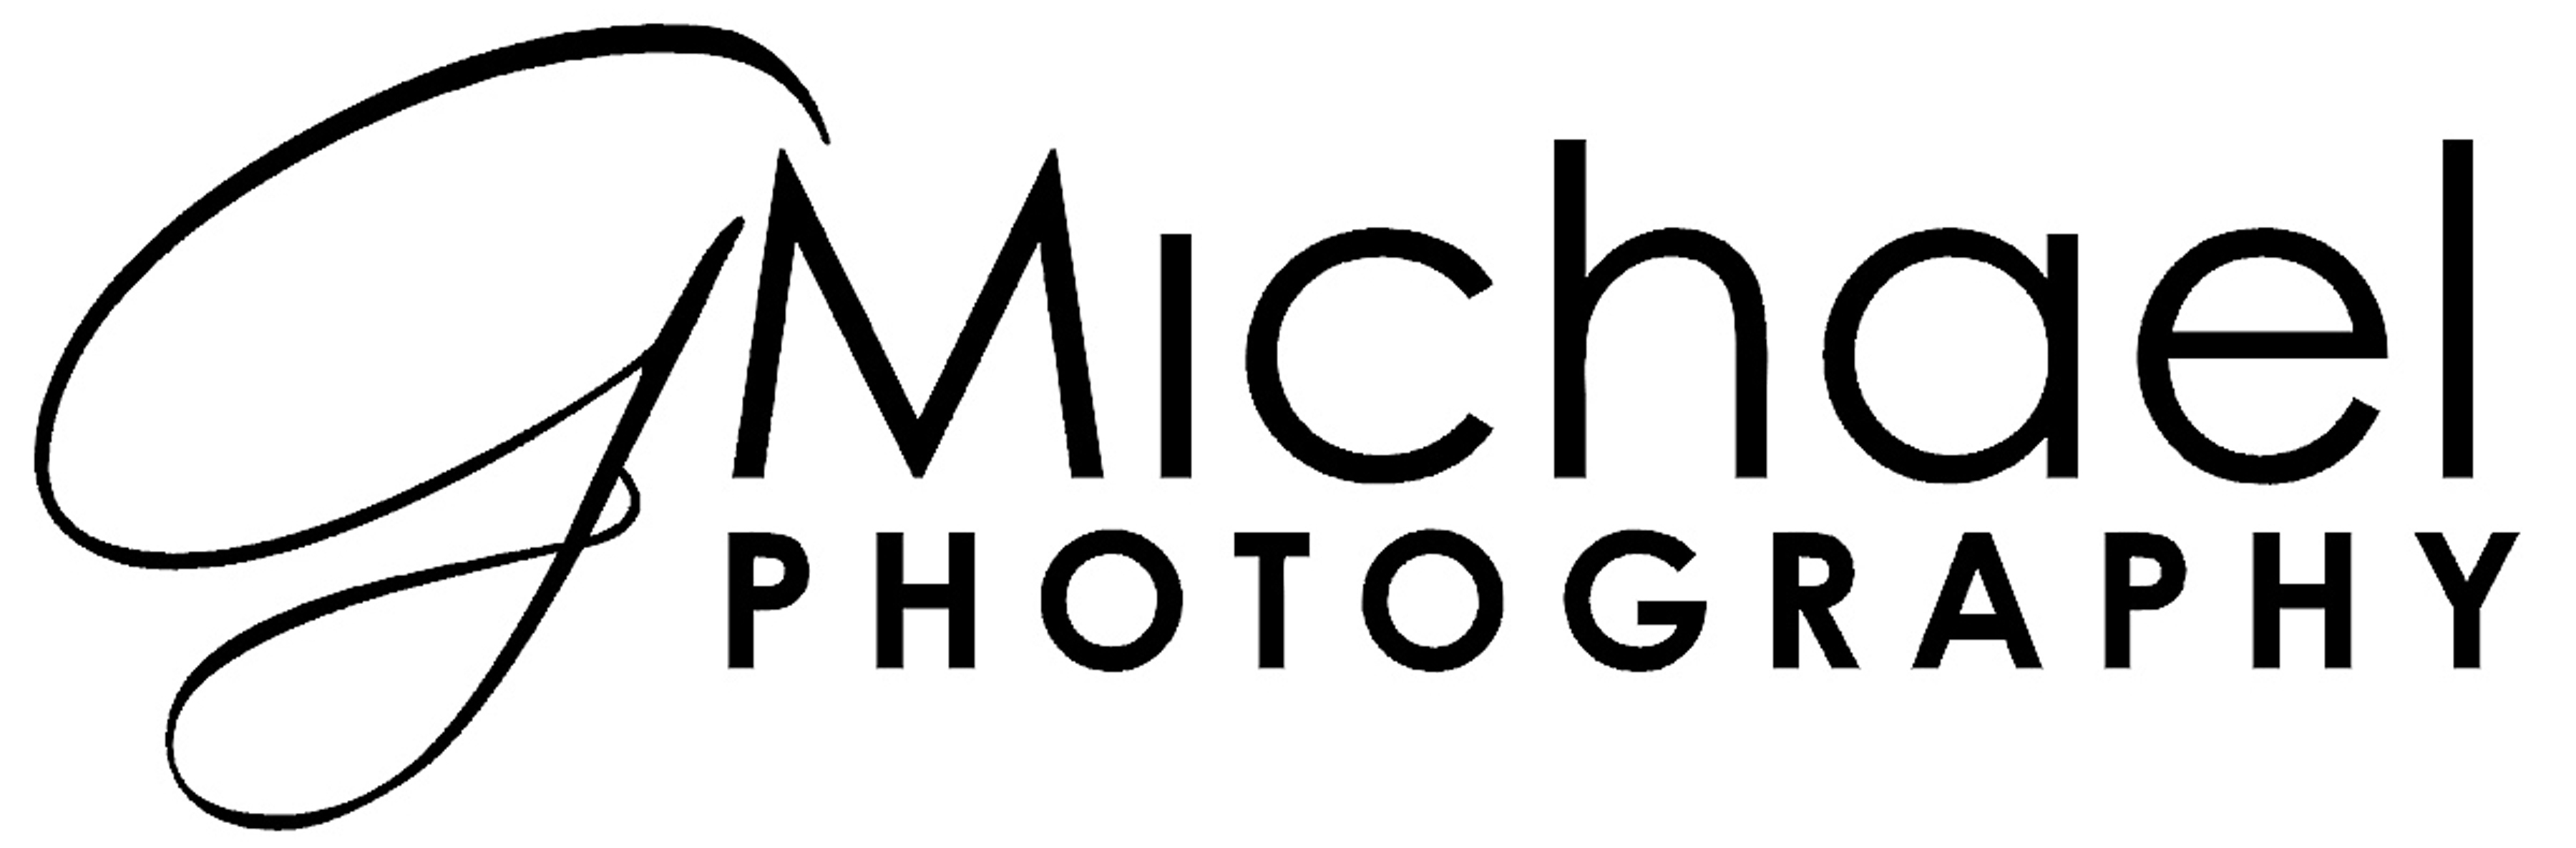 G. Michael Photography